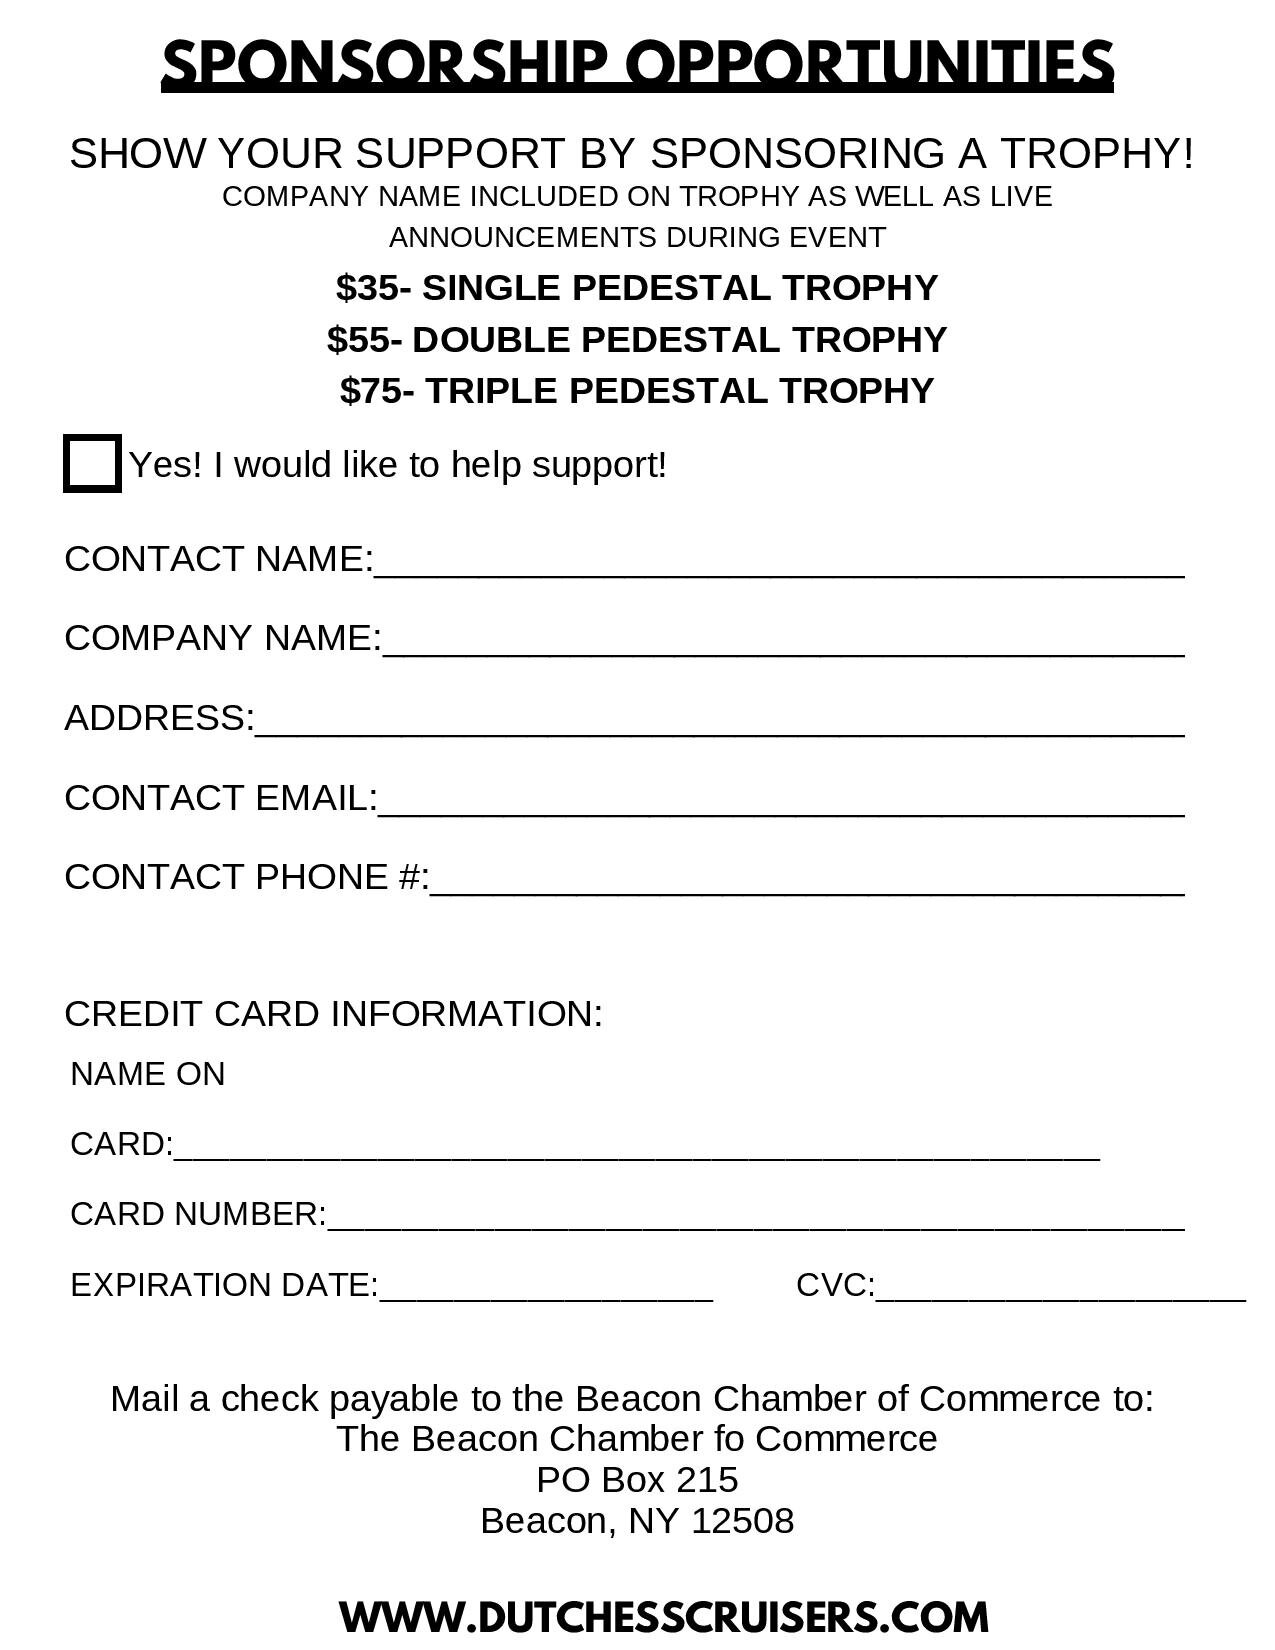 Trophy Sponsorship Form-page-002.jpg